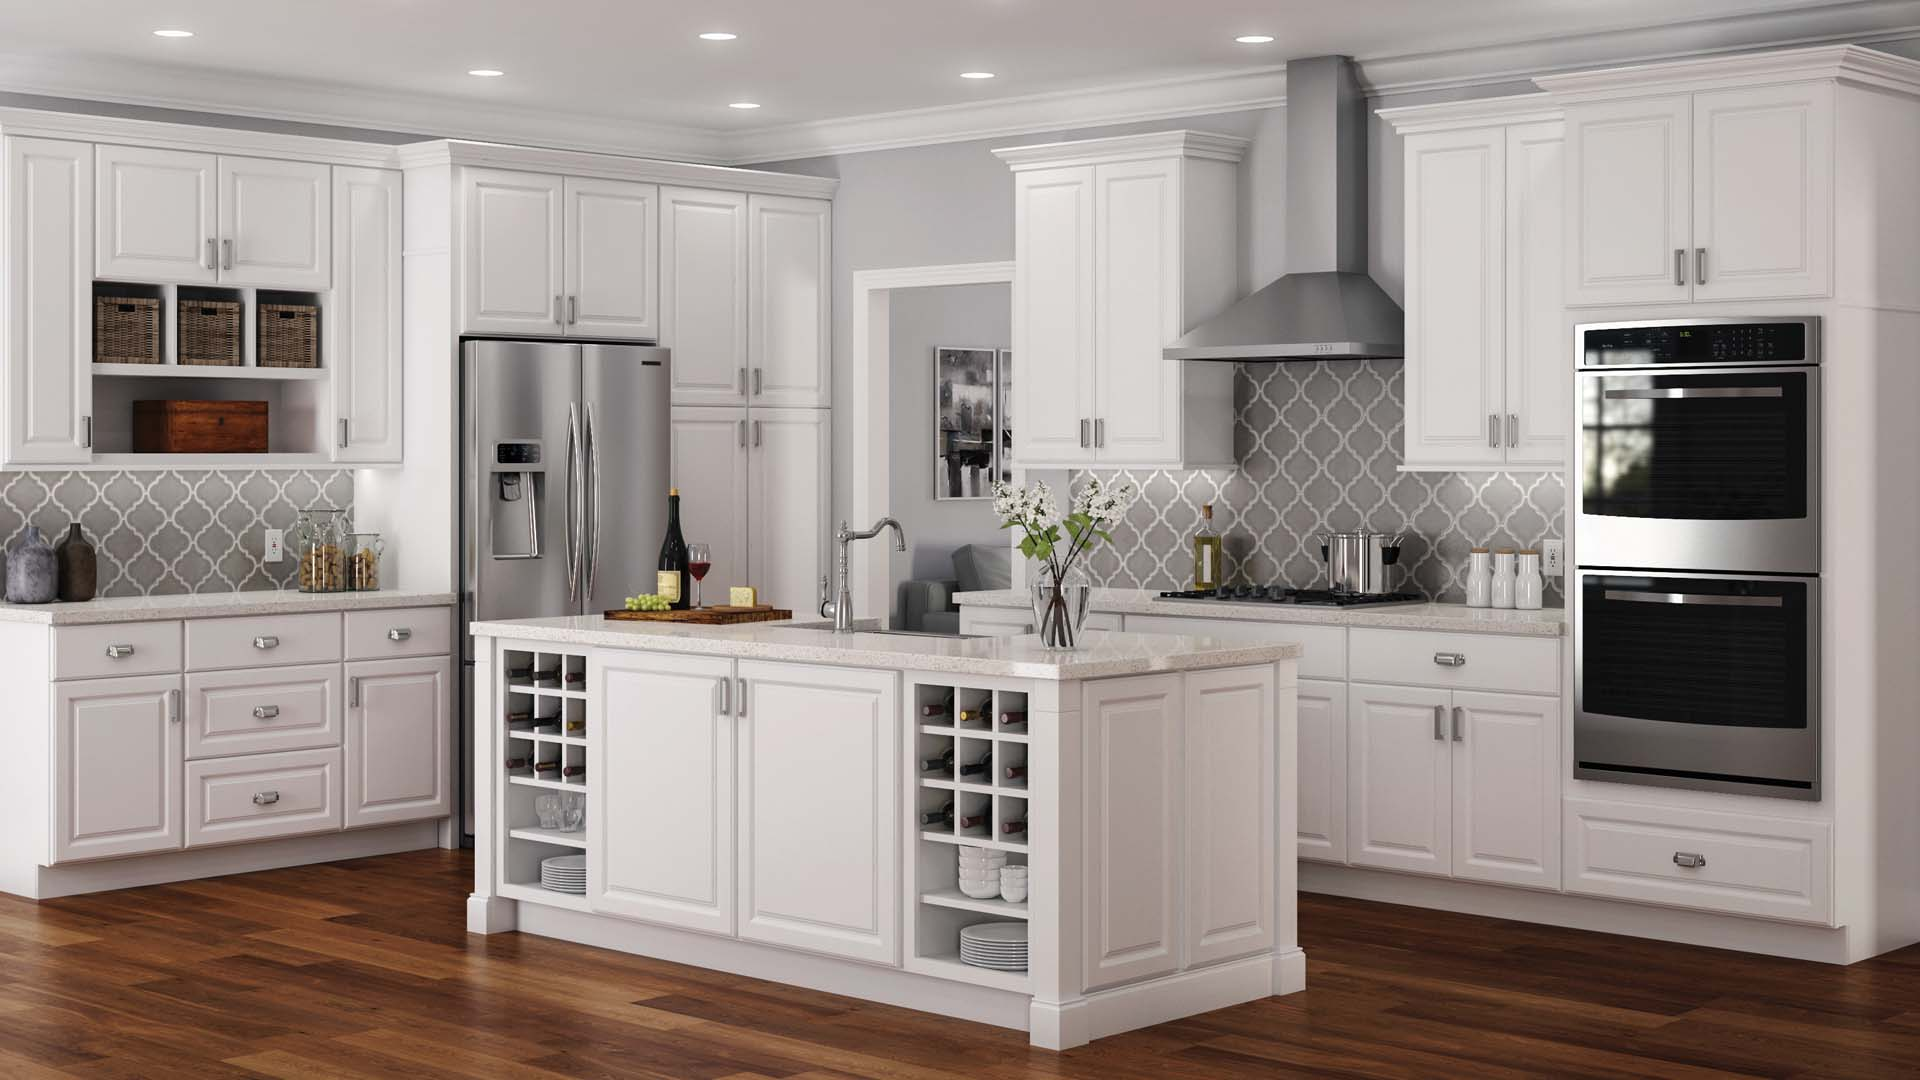 Hampton Cabinet Accessories in White Kitchen The Home